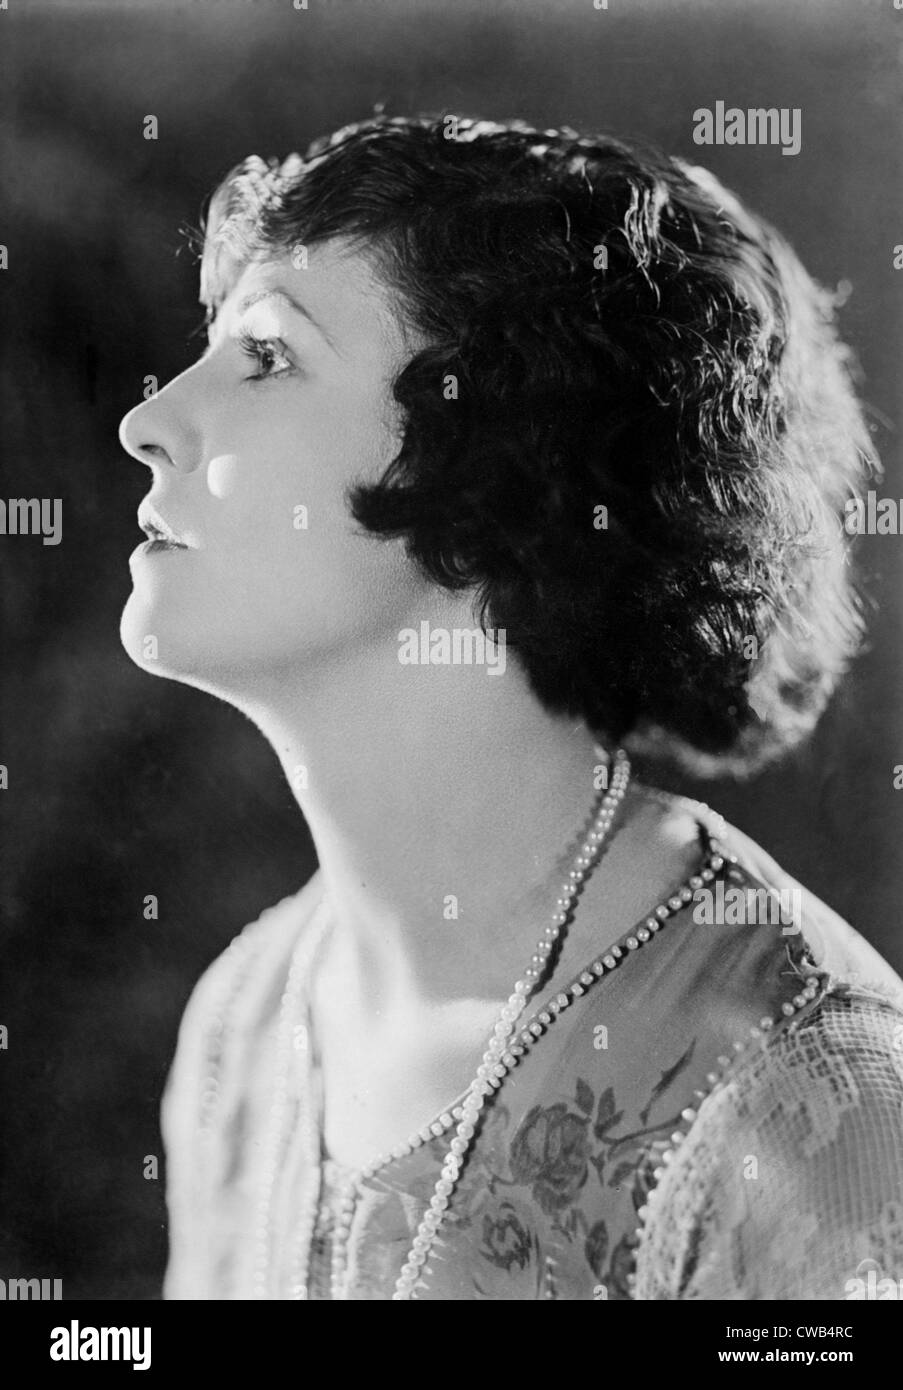 Pleasant 1920S Hairstyles Black And White Stock Photos Images Alamy Schematic Wiring Diagrams Amerangerunnerswayorg